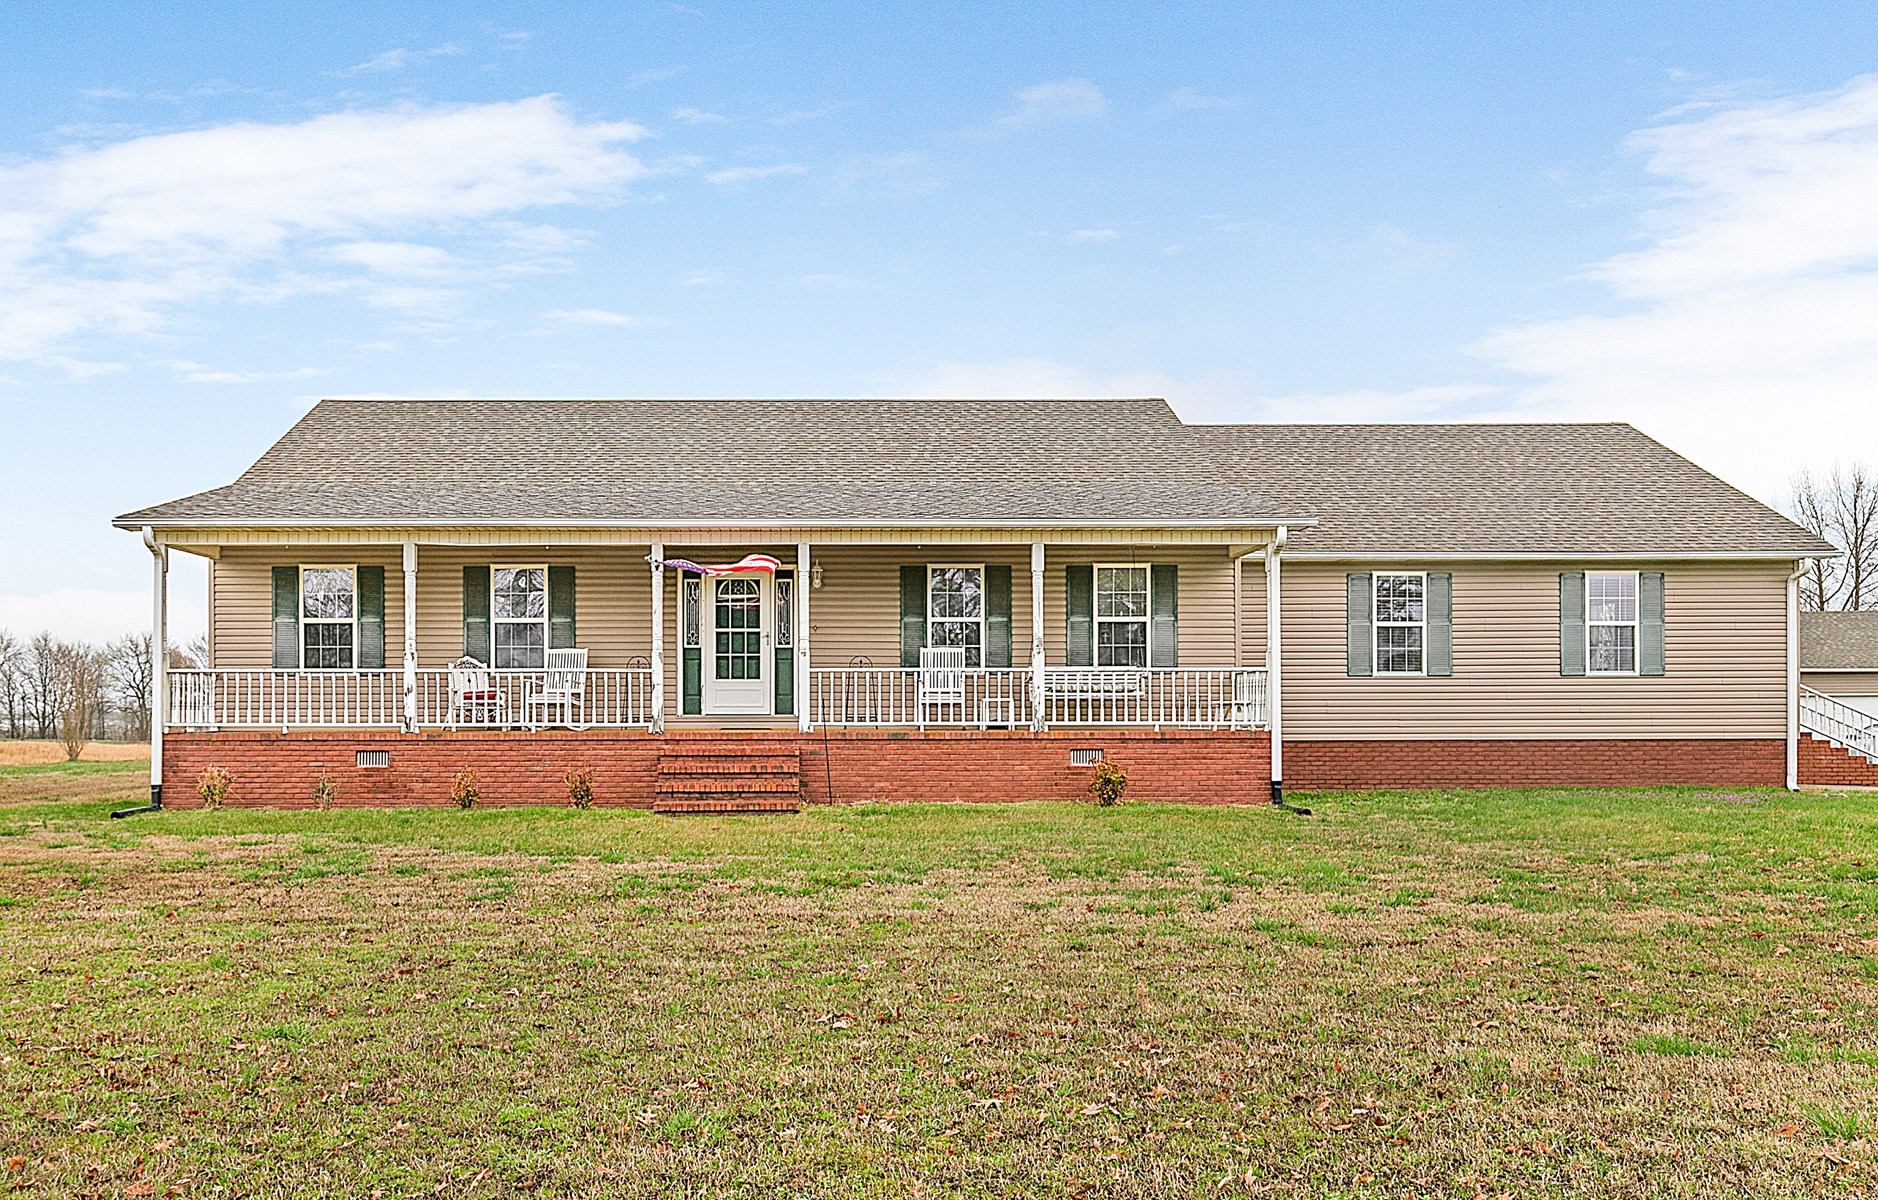 TN Country Home for Sale on 5 Acre Lot w/ In-ground Pool